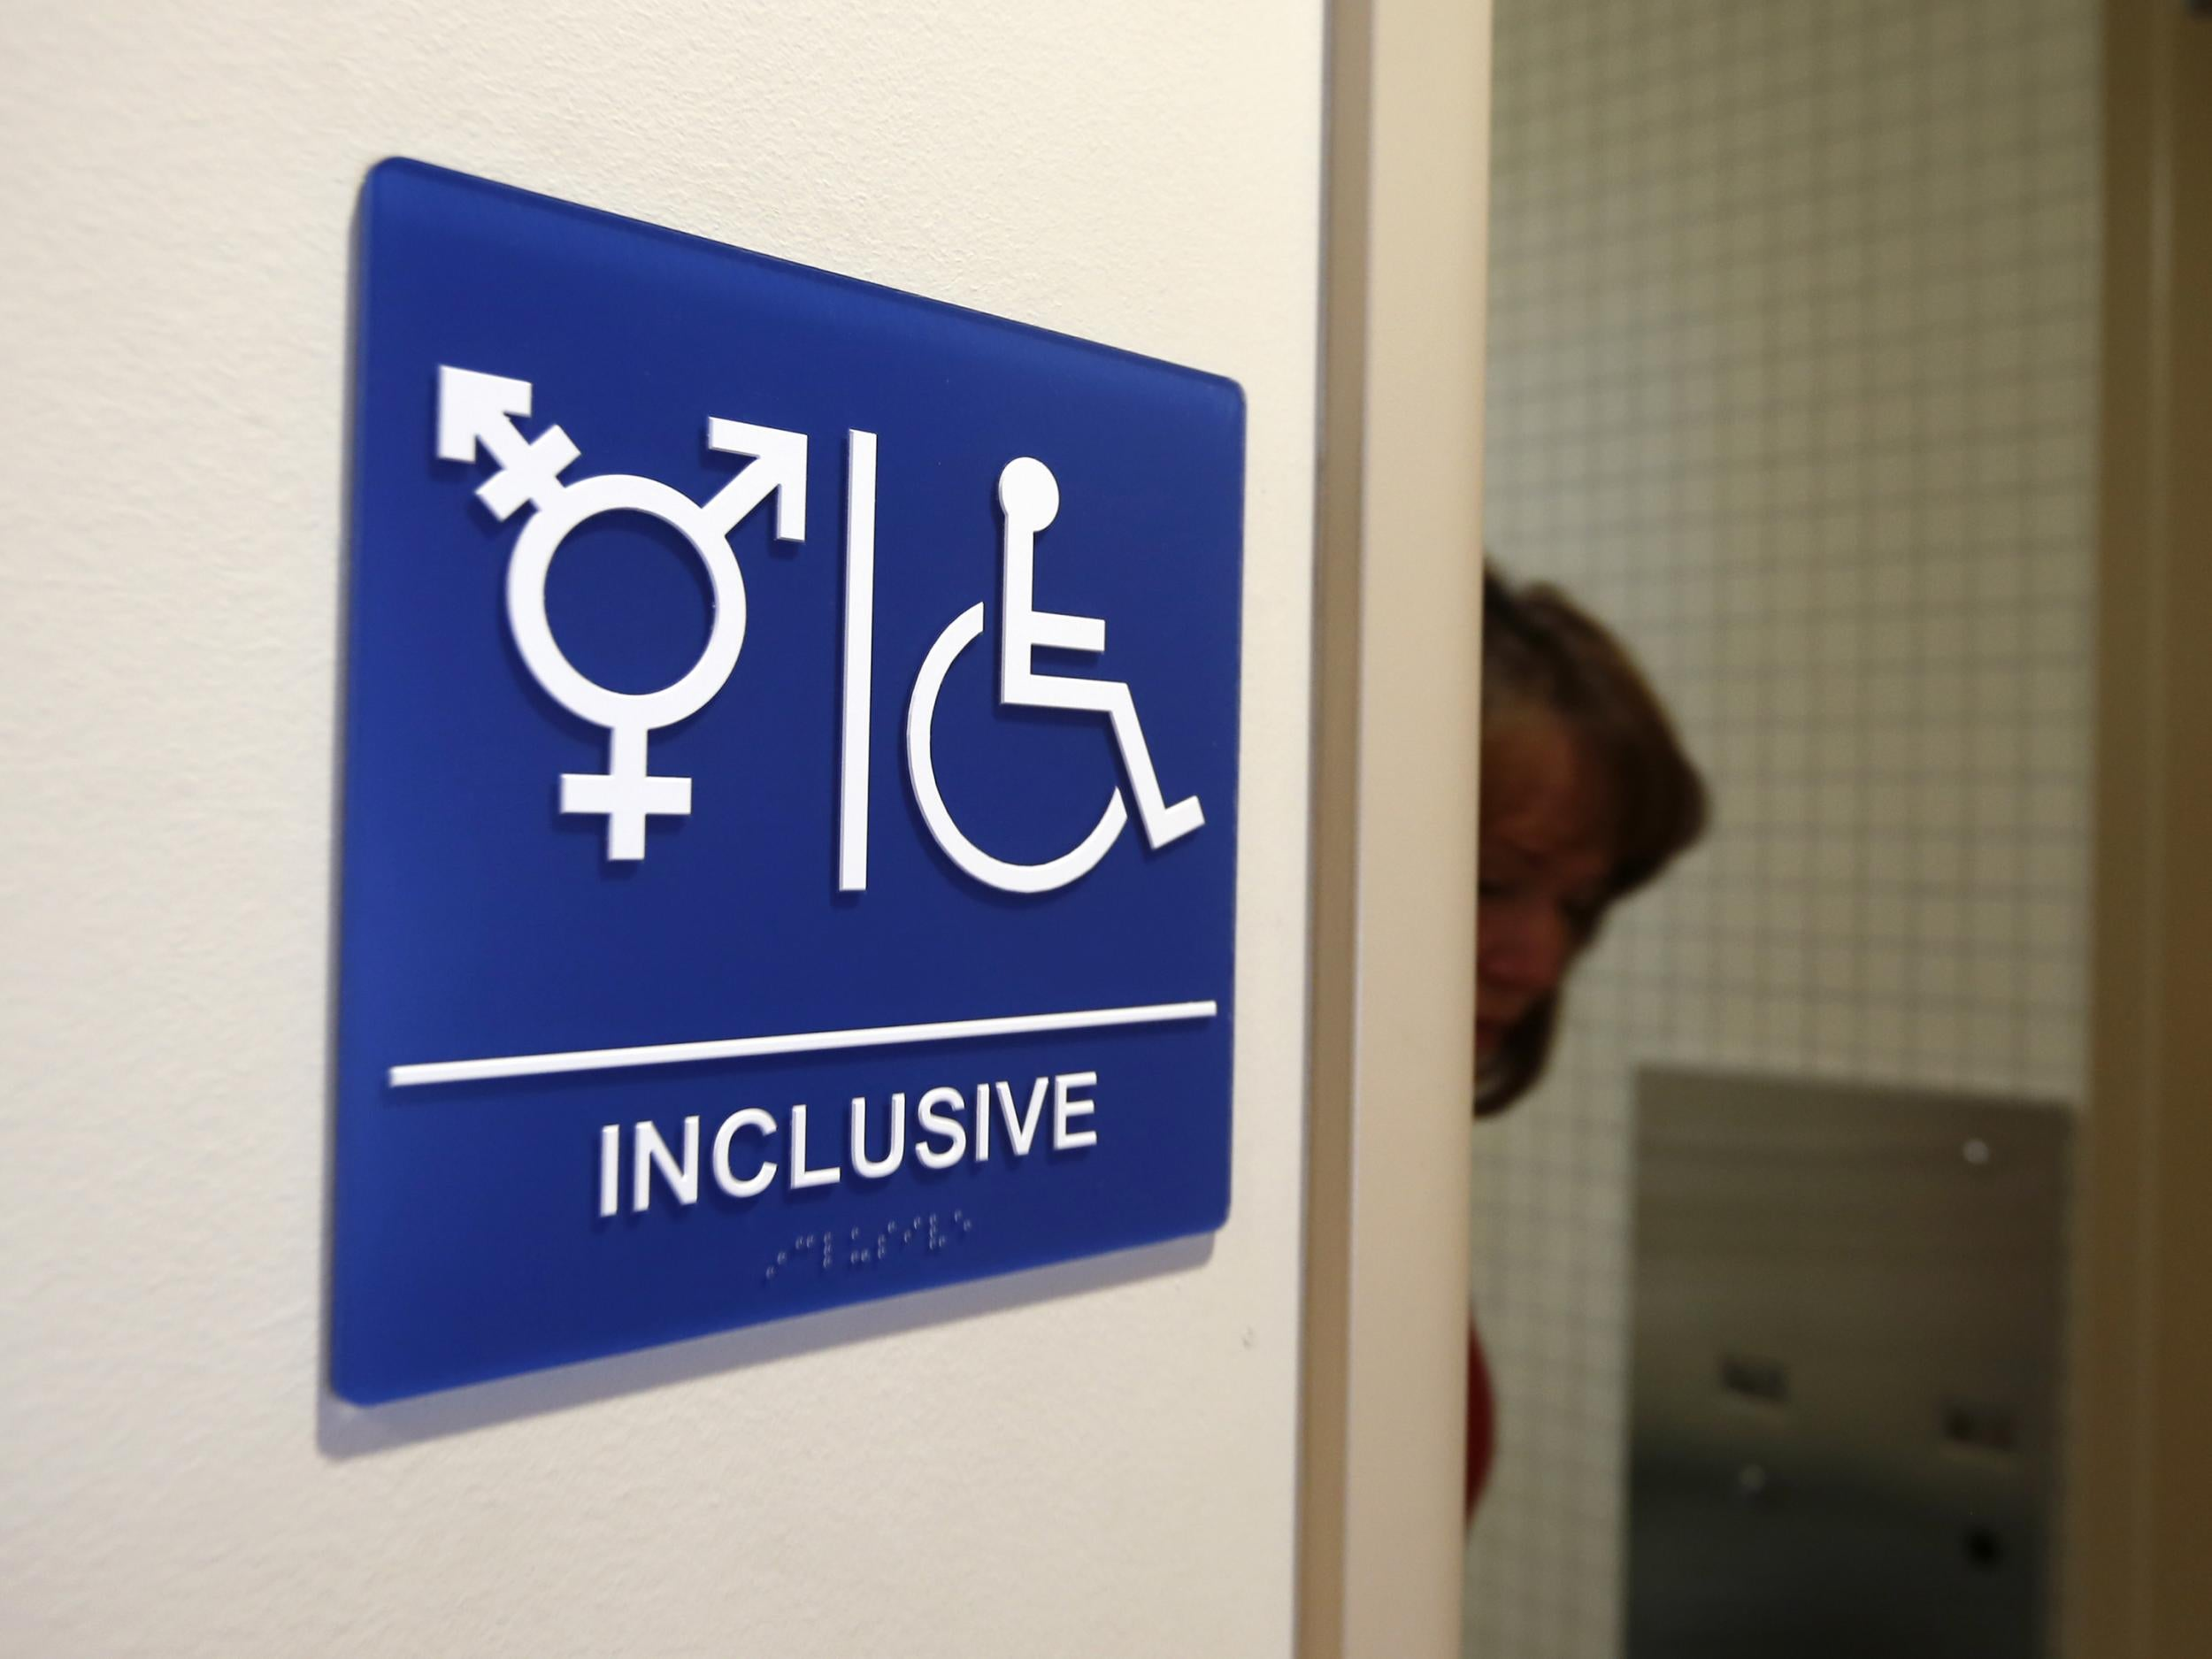 Unisex Toilets At London Primary School Spark Outrage Among Parents The Independent